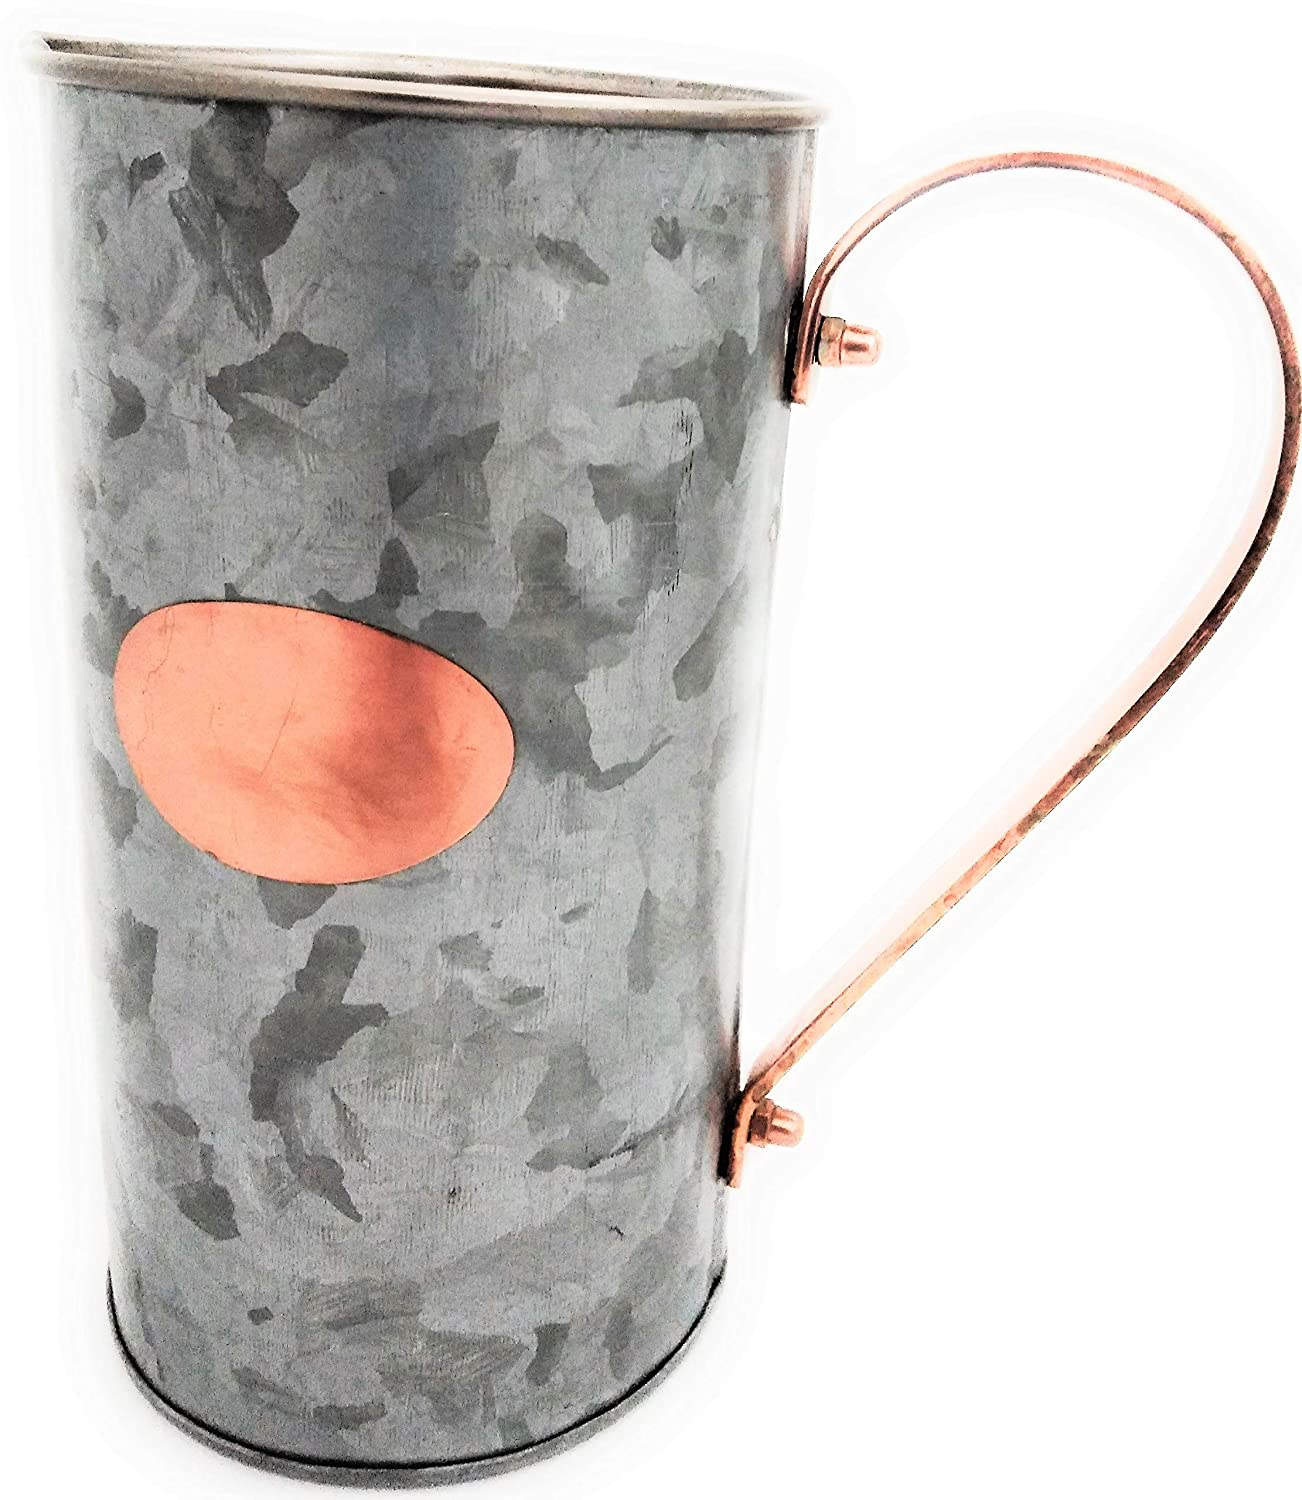 Galrose Decorative Water Pitcher//Carafe-Galvanized Iron Drinks//Juice Serving Jug Waterproof for Flower Arrangements Stainless Steel Lined Rose Gold Plaque /& Handle 6th Wedding Anniversary Gift Idea